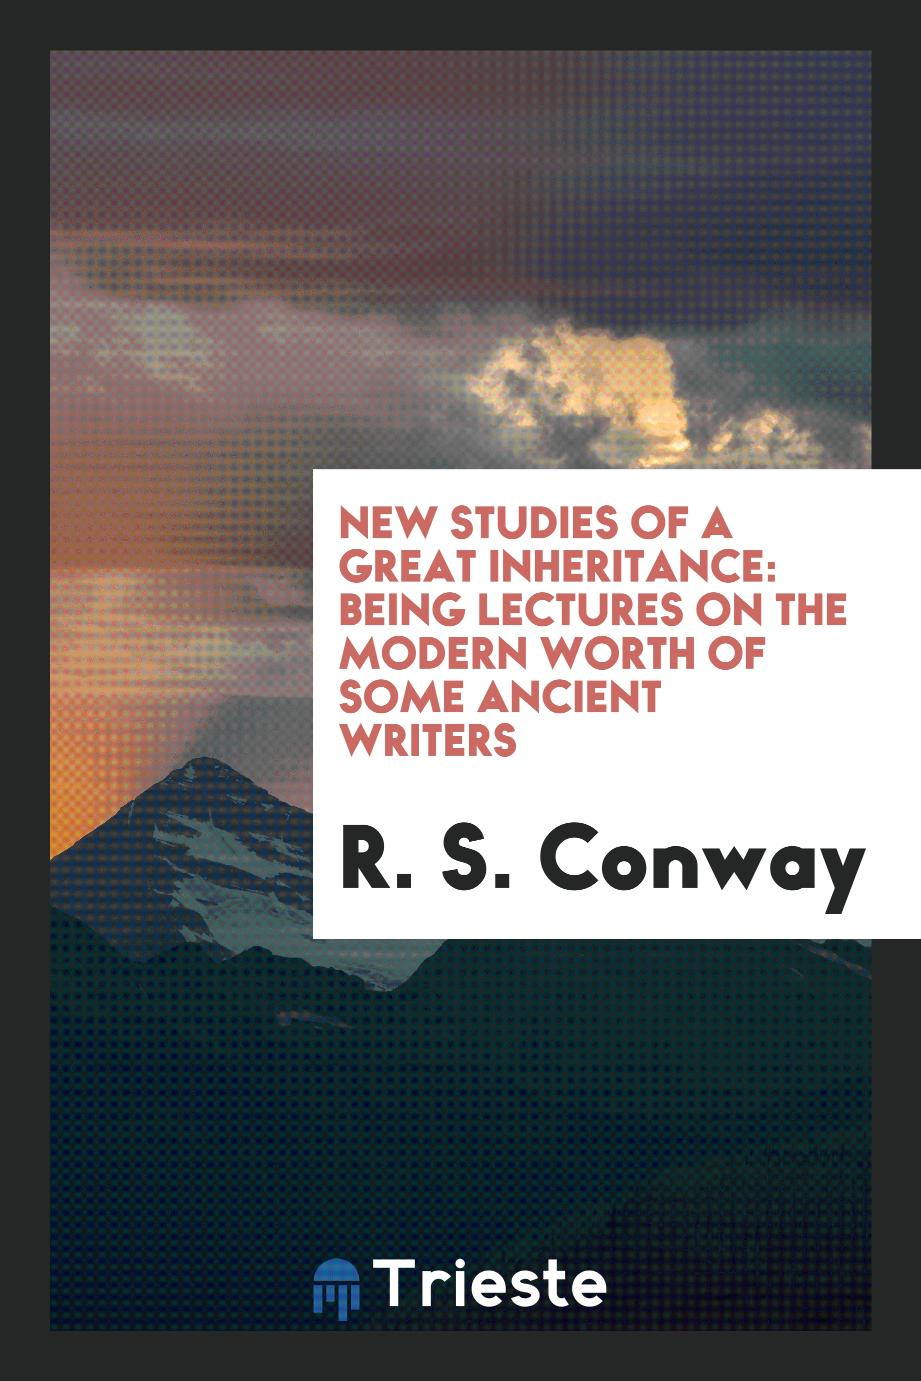 New studies of a great inheritance: being lectures on the modern worth of some ancient writers